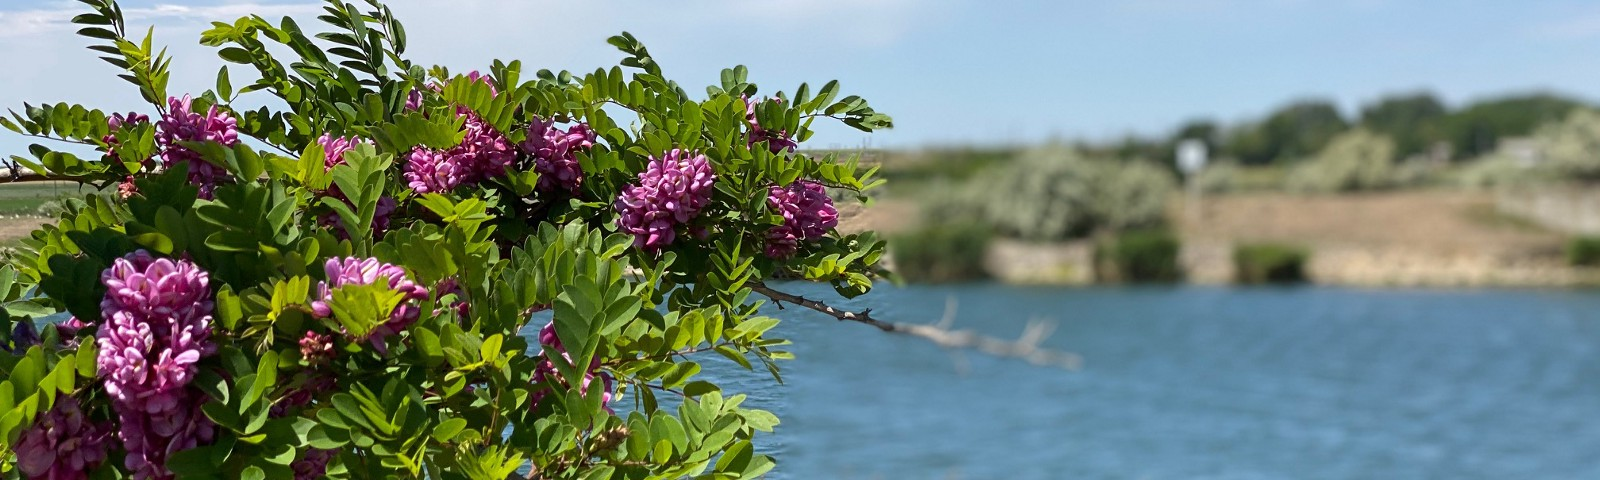 magenta flowers on a side of a river channel in a sunny day and blue sky